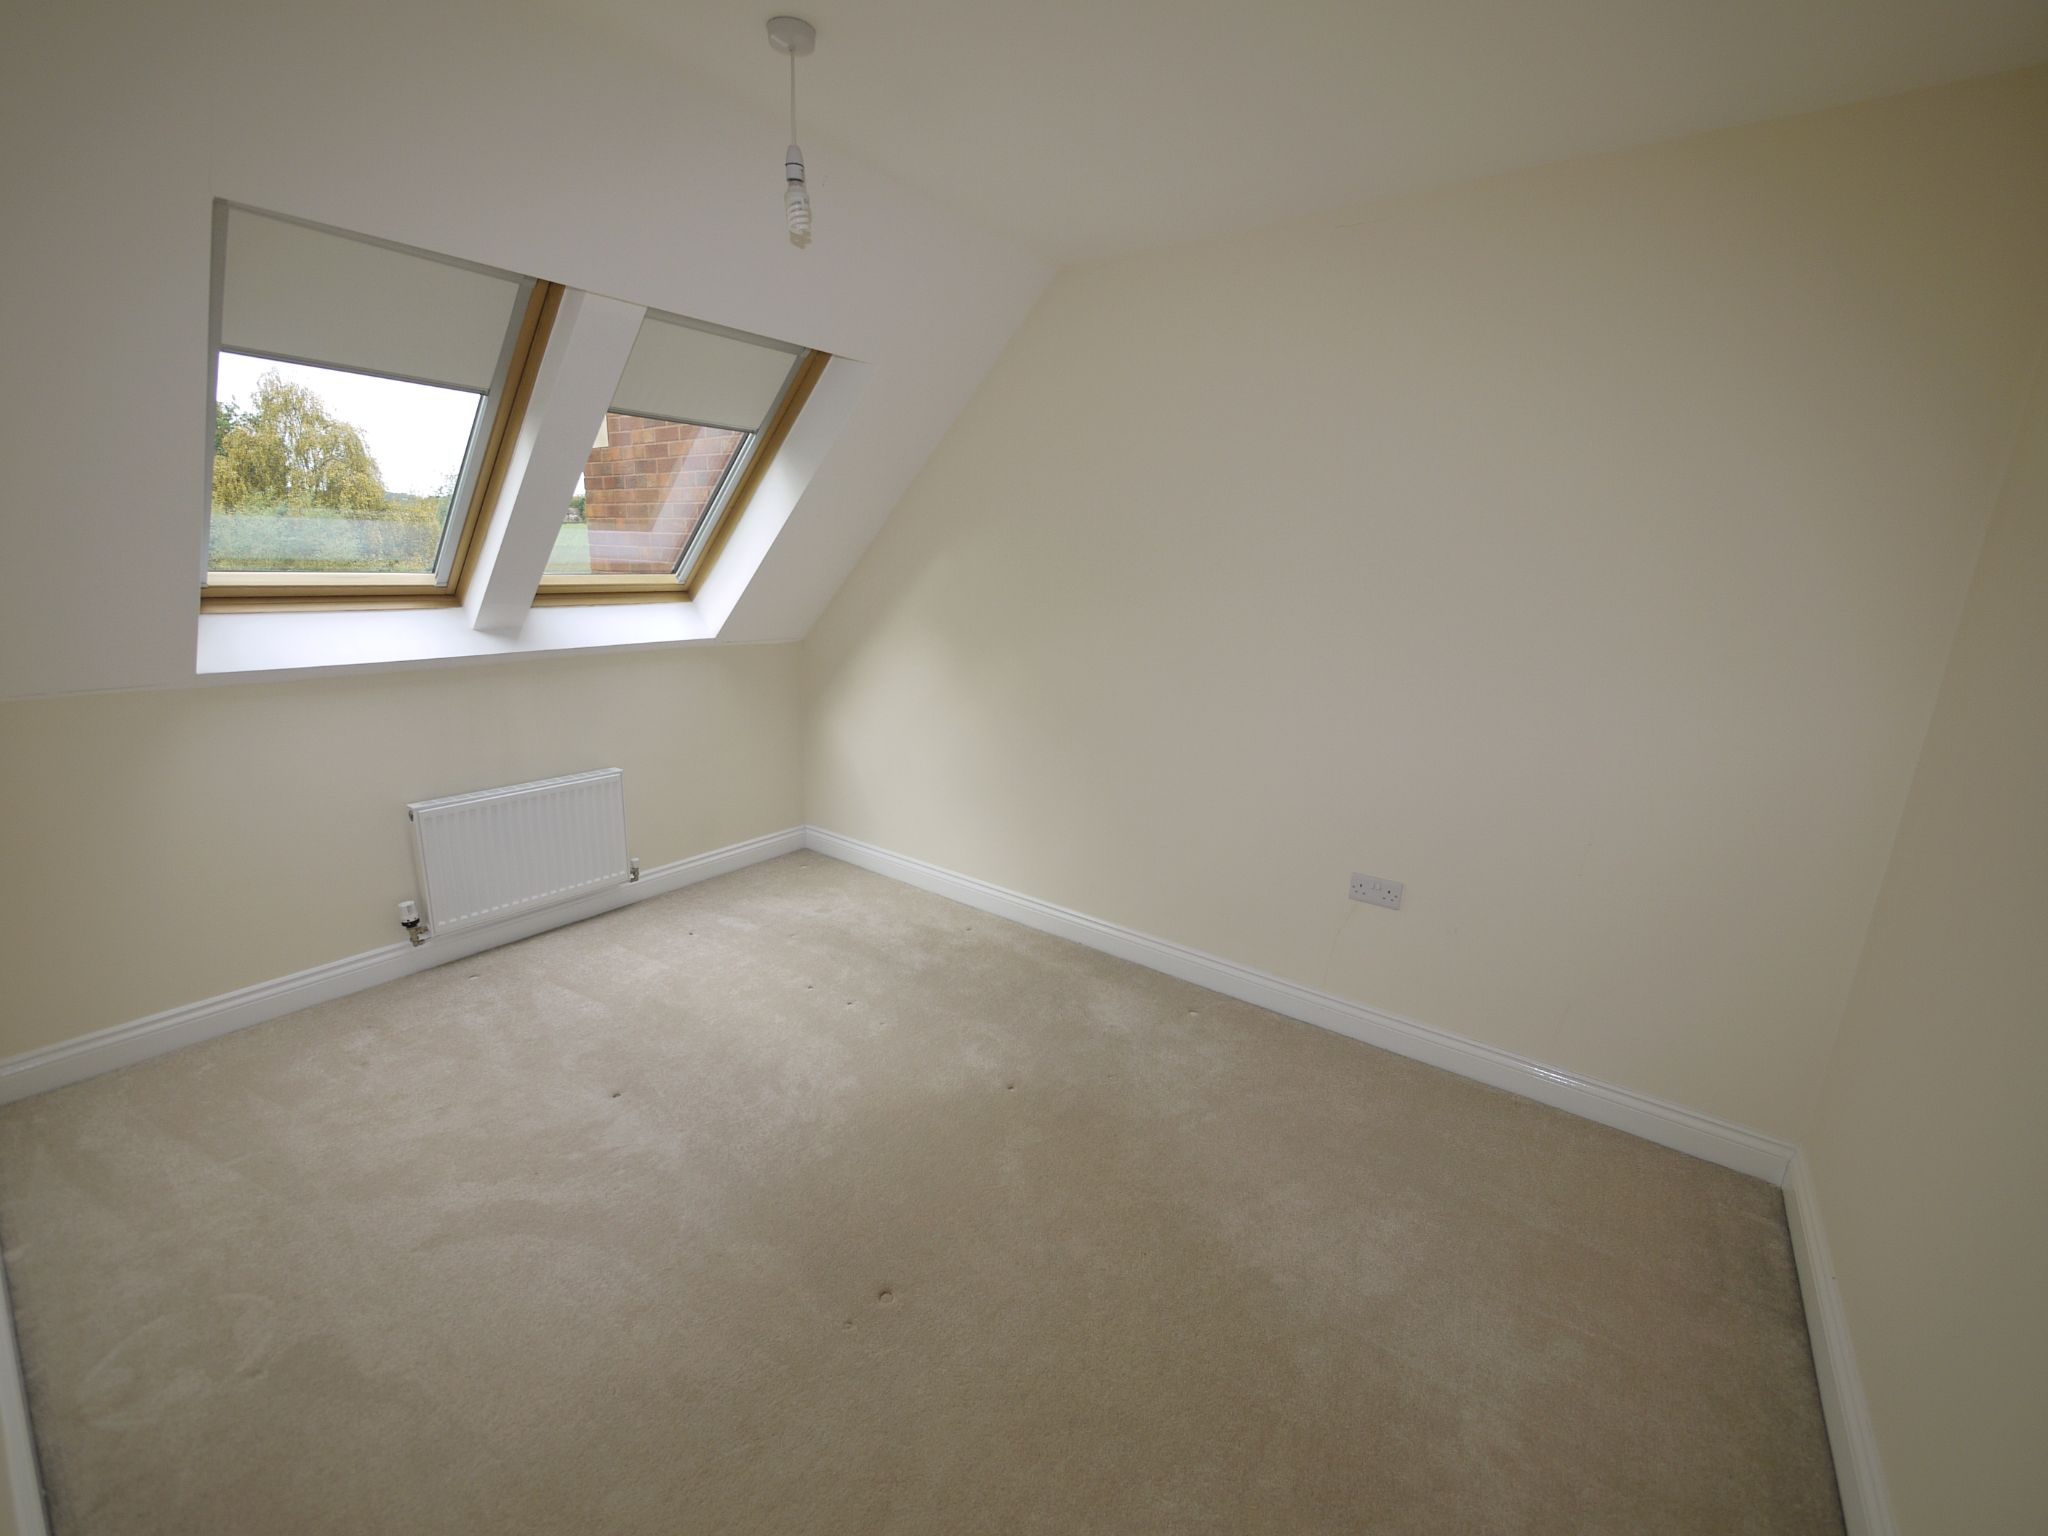 3 bedroom town house SSTC in Mirfield - Photograph 8.